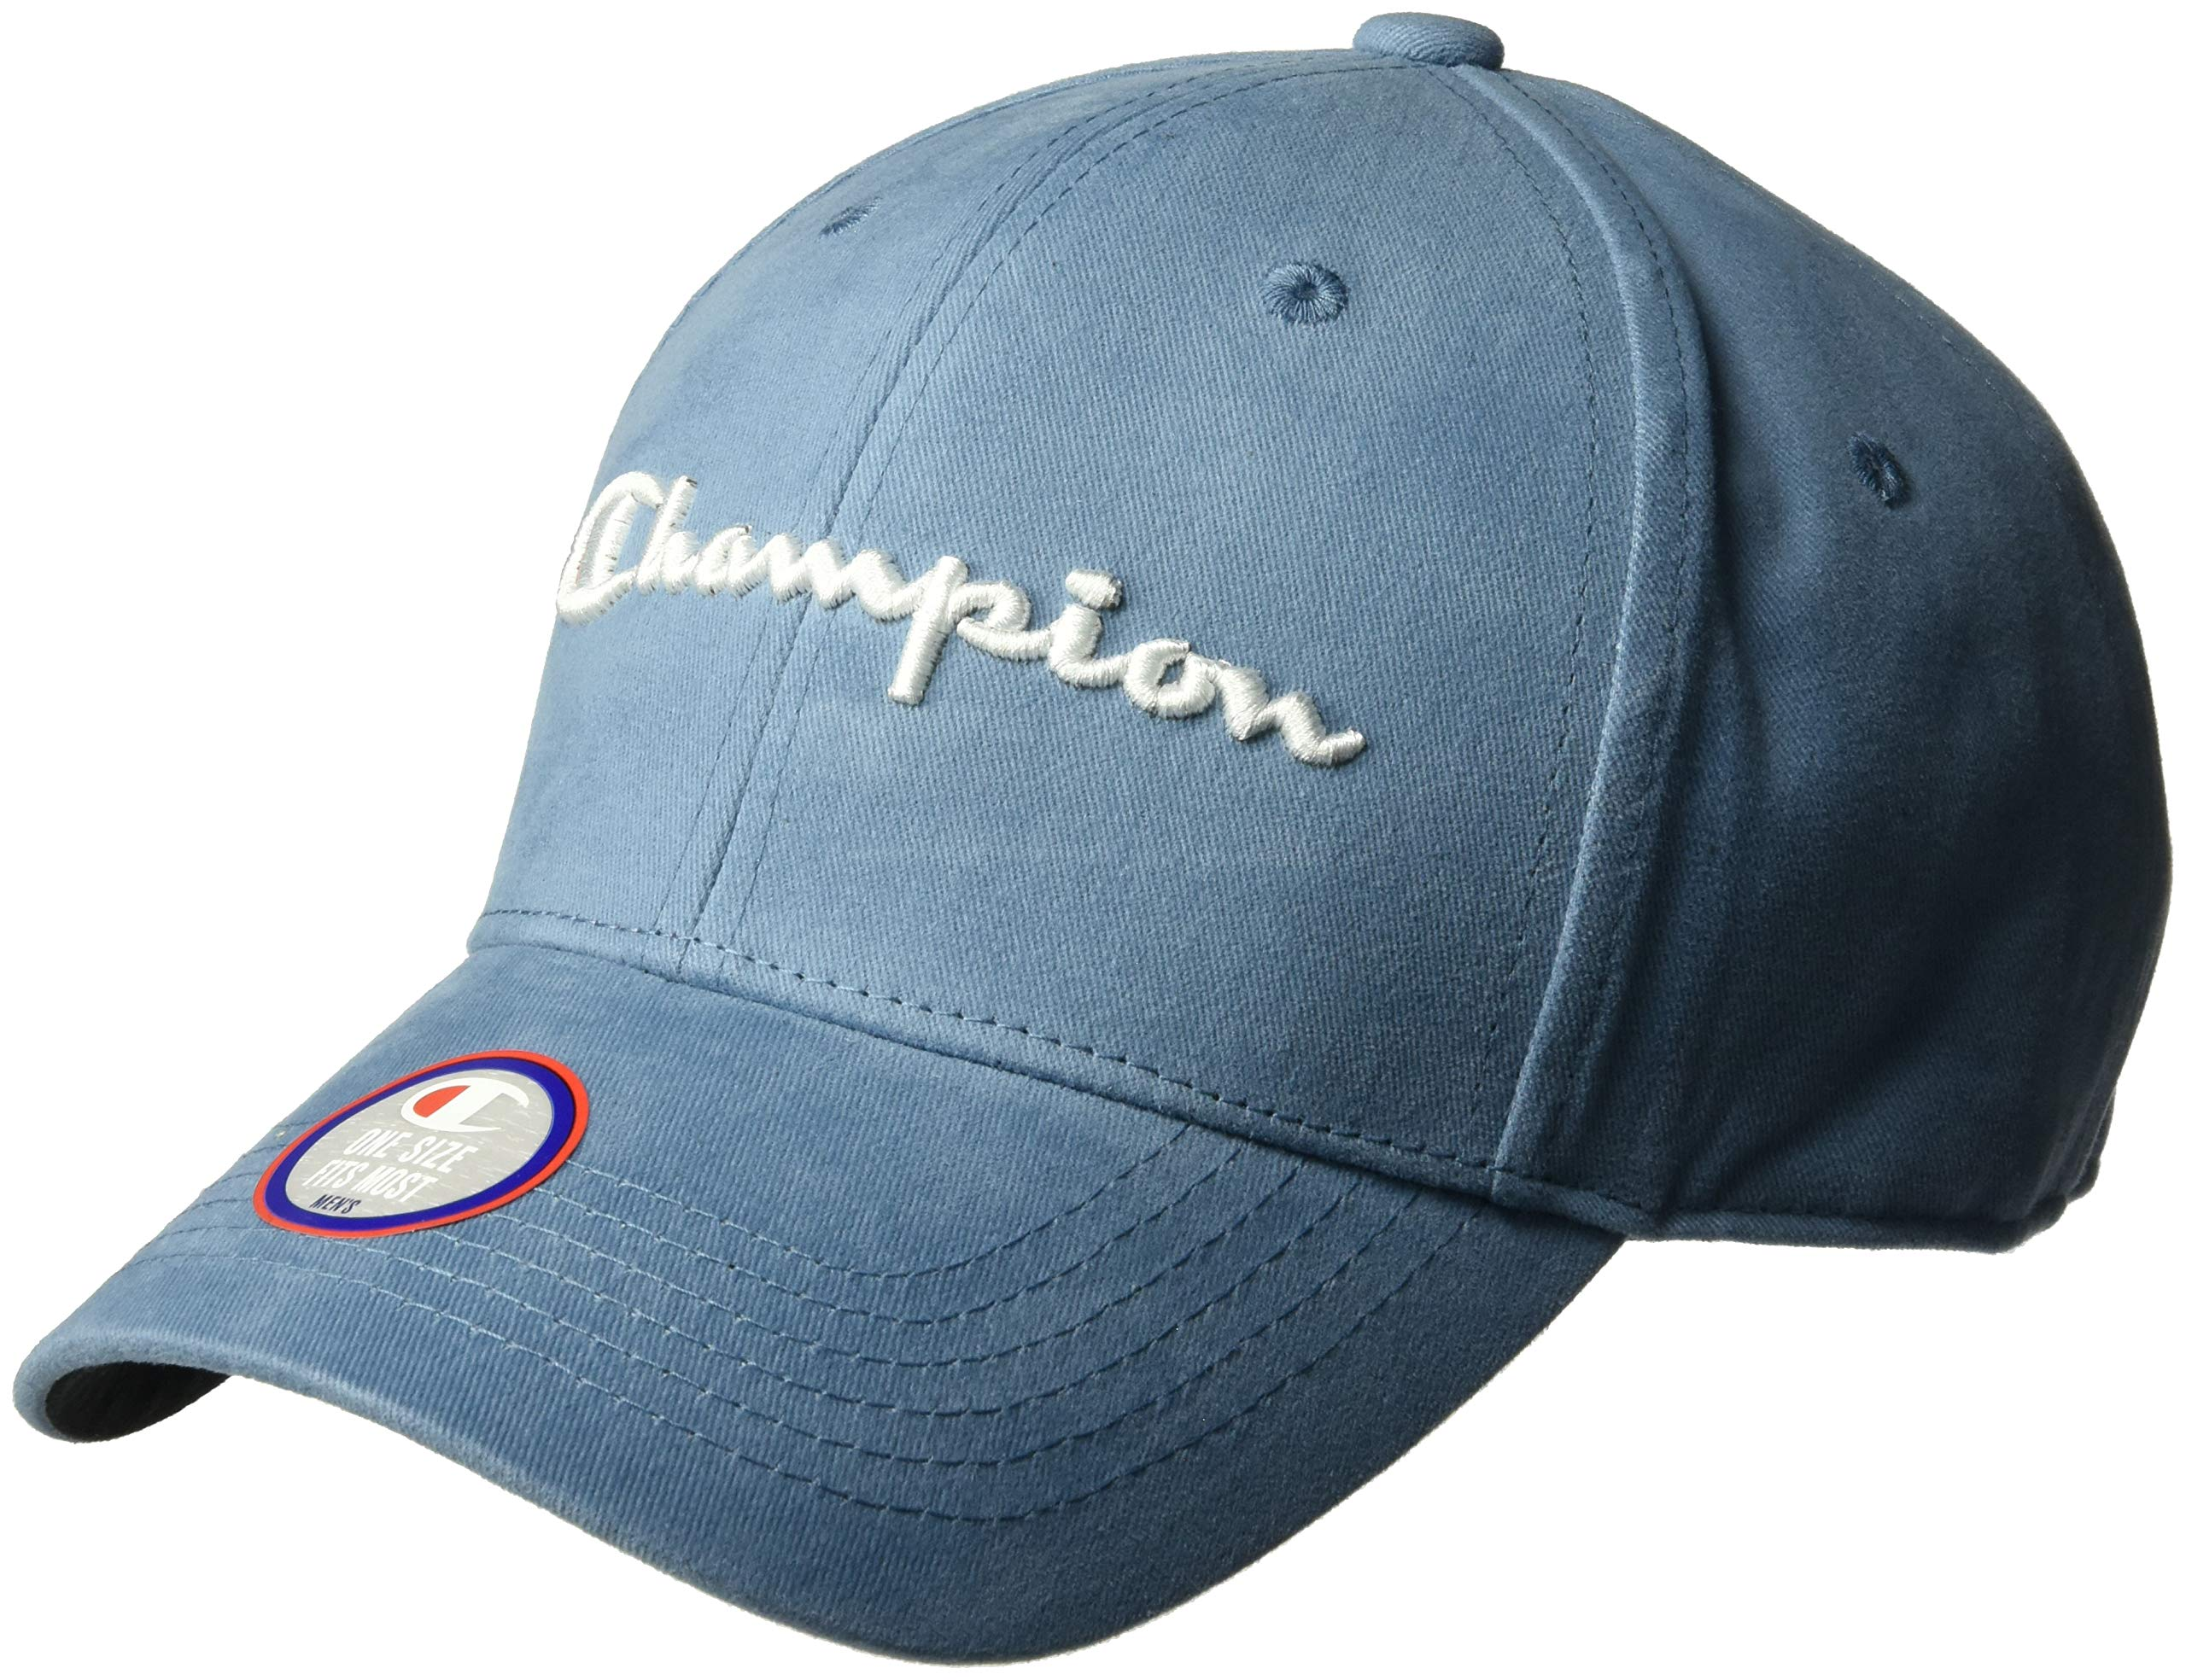 1775926d03e Champion LIFE Men s Classic Twill Hat - 325501   Baseball Caps ...